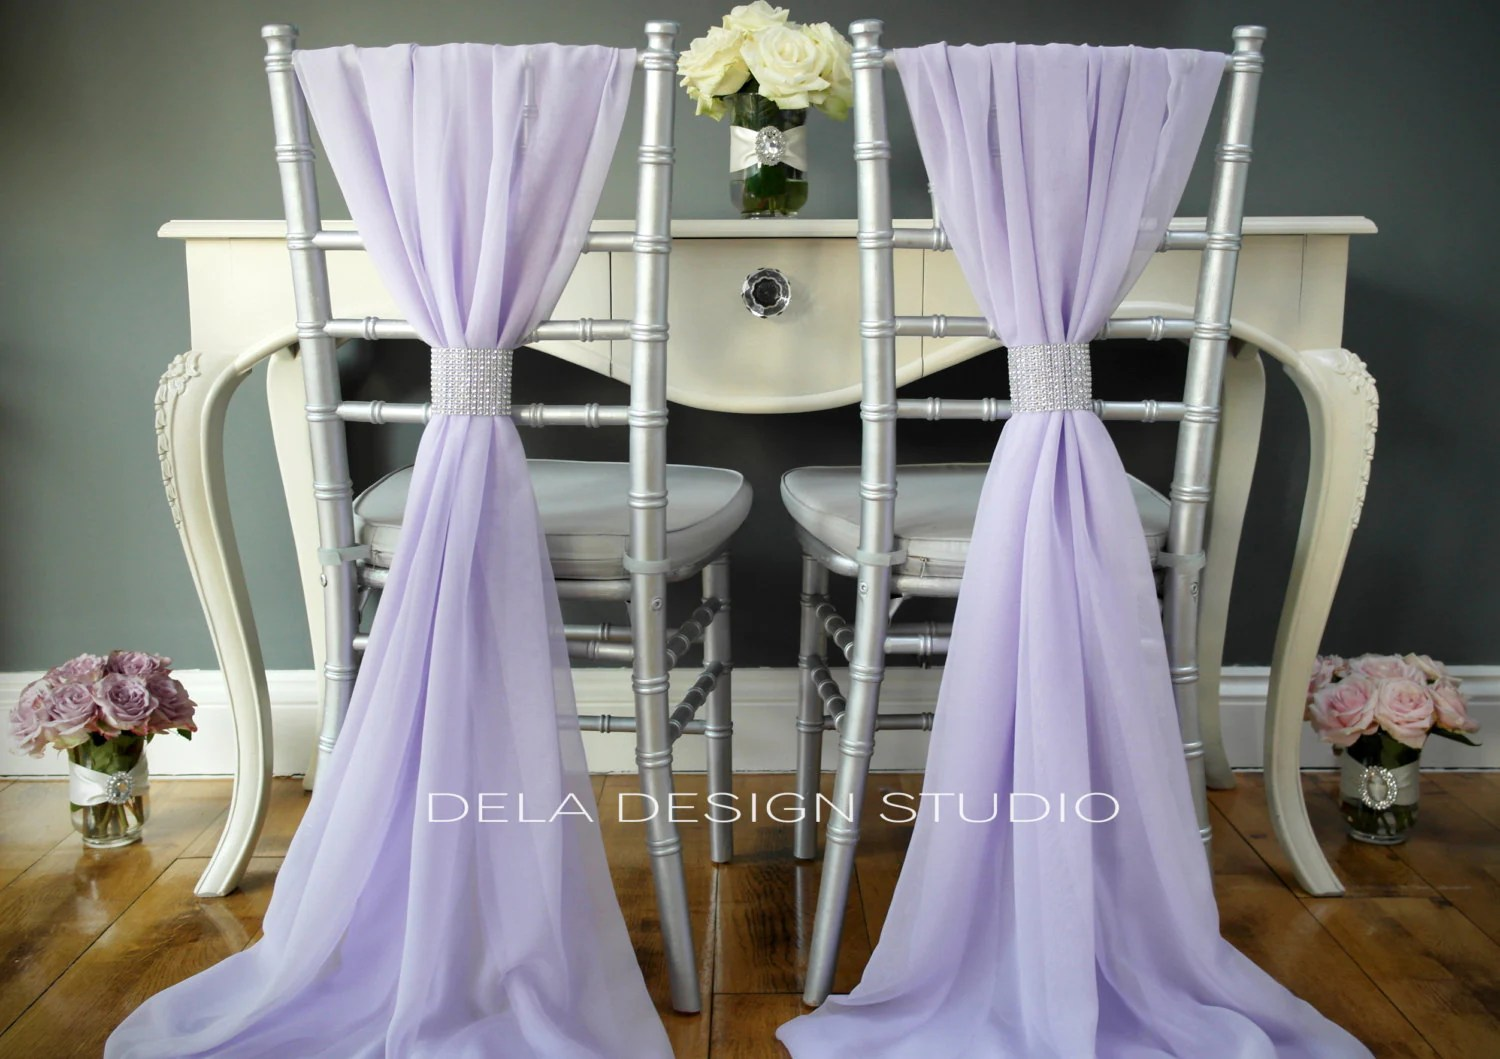 wedding chair covers lilac tufted leather desk chairs chiffon cover sash by